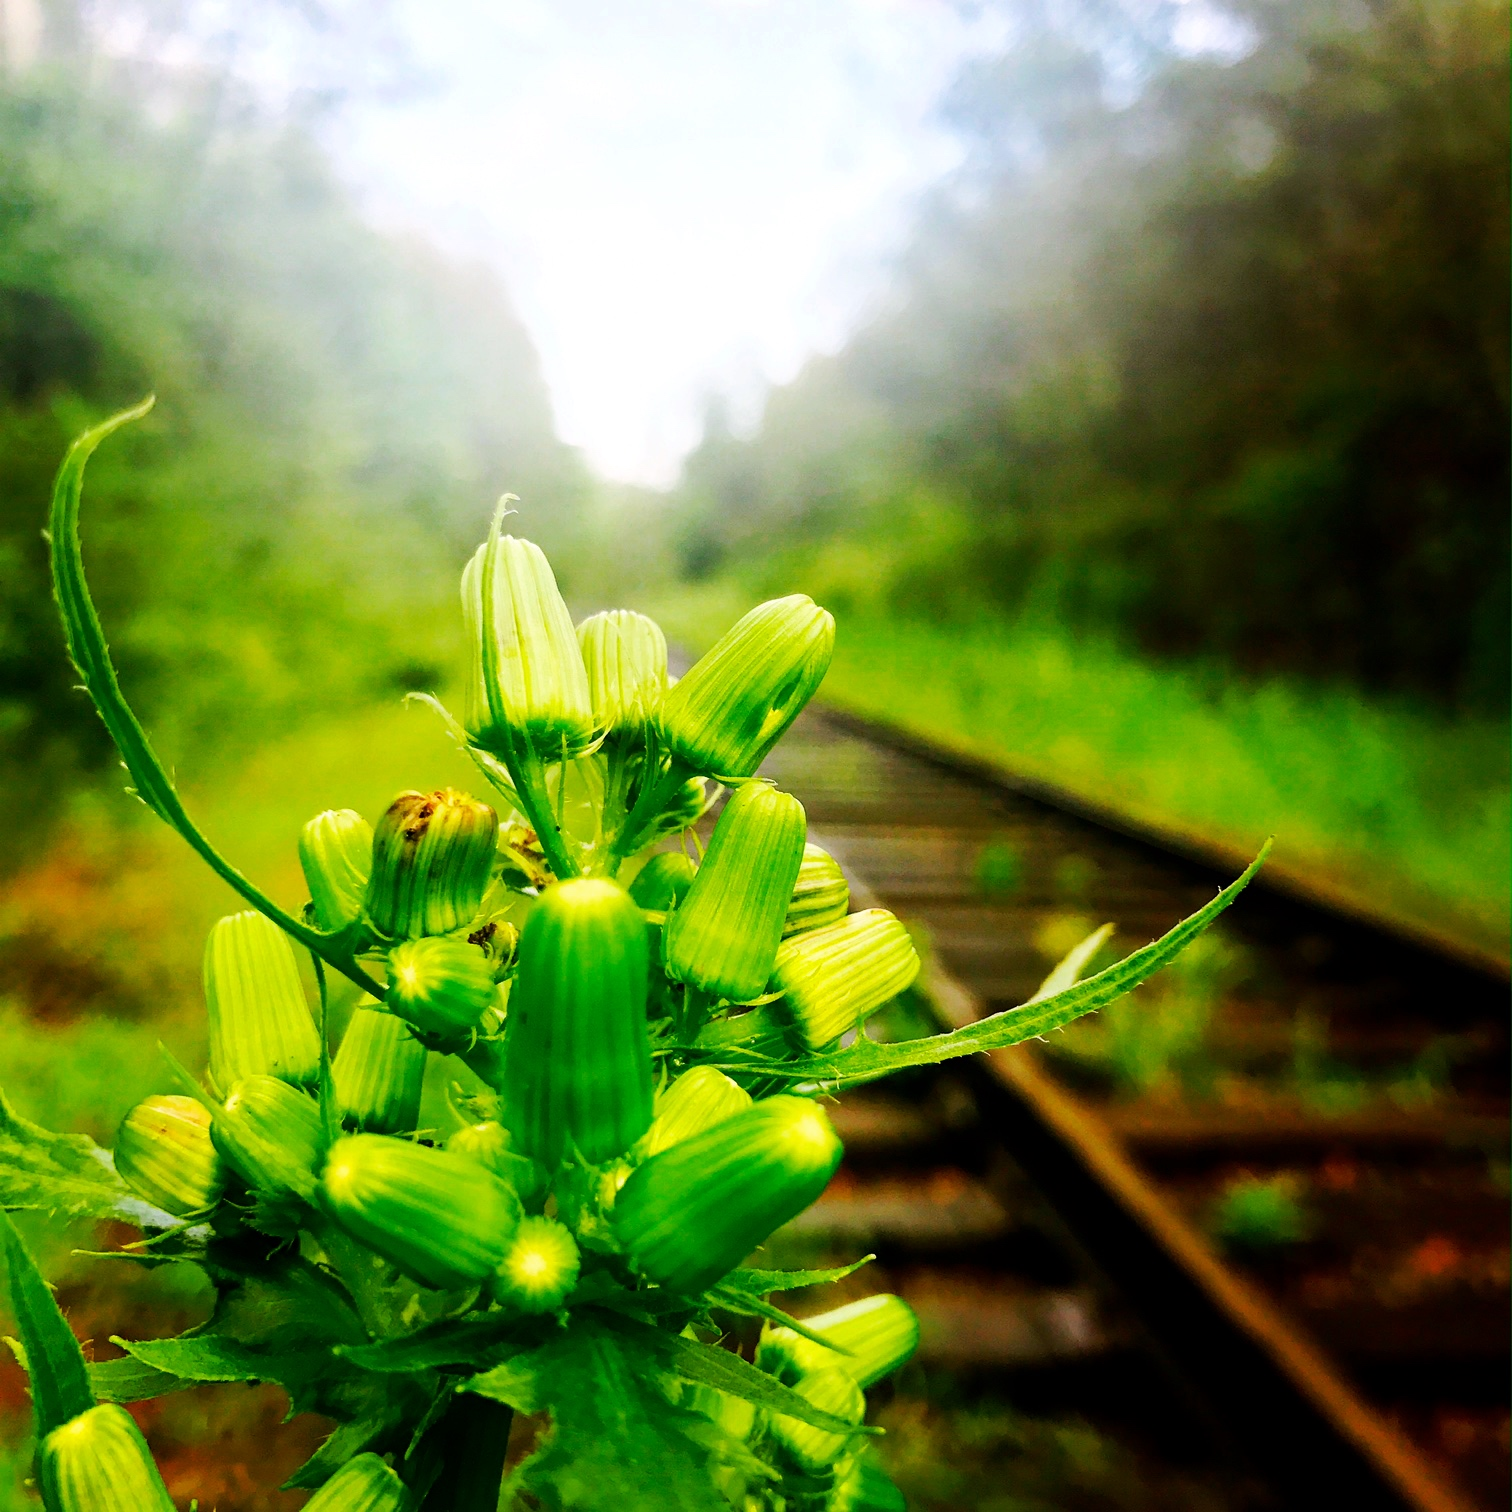 Evening Primrose on the Railroad Tracks